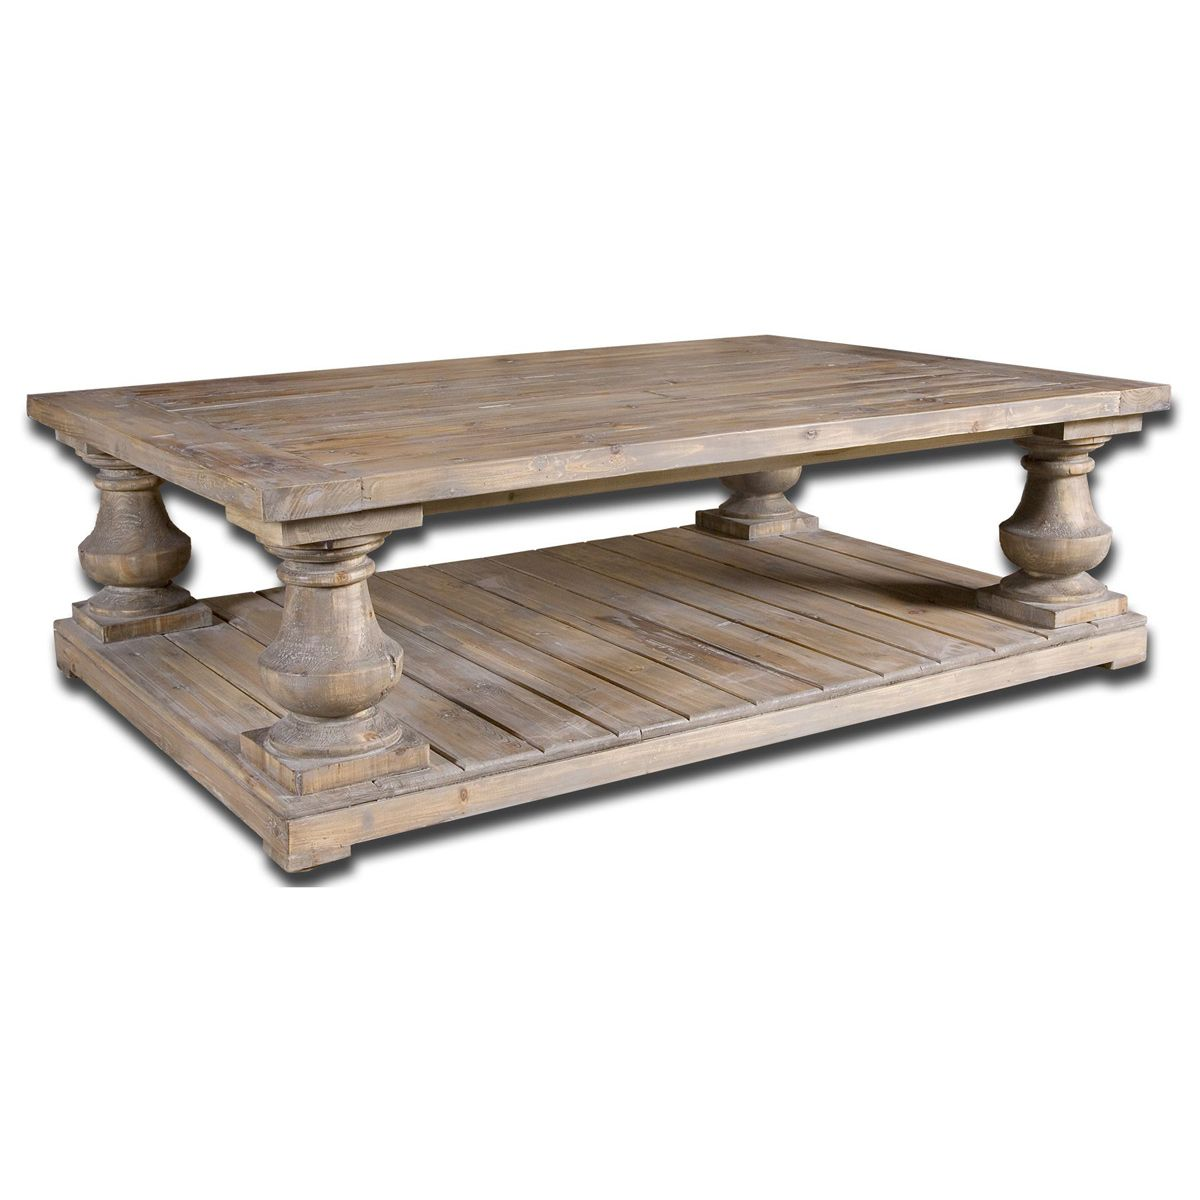 Stratford Cocktail Table - OUT OF STOCK UNTIL 11/20/2020